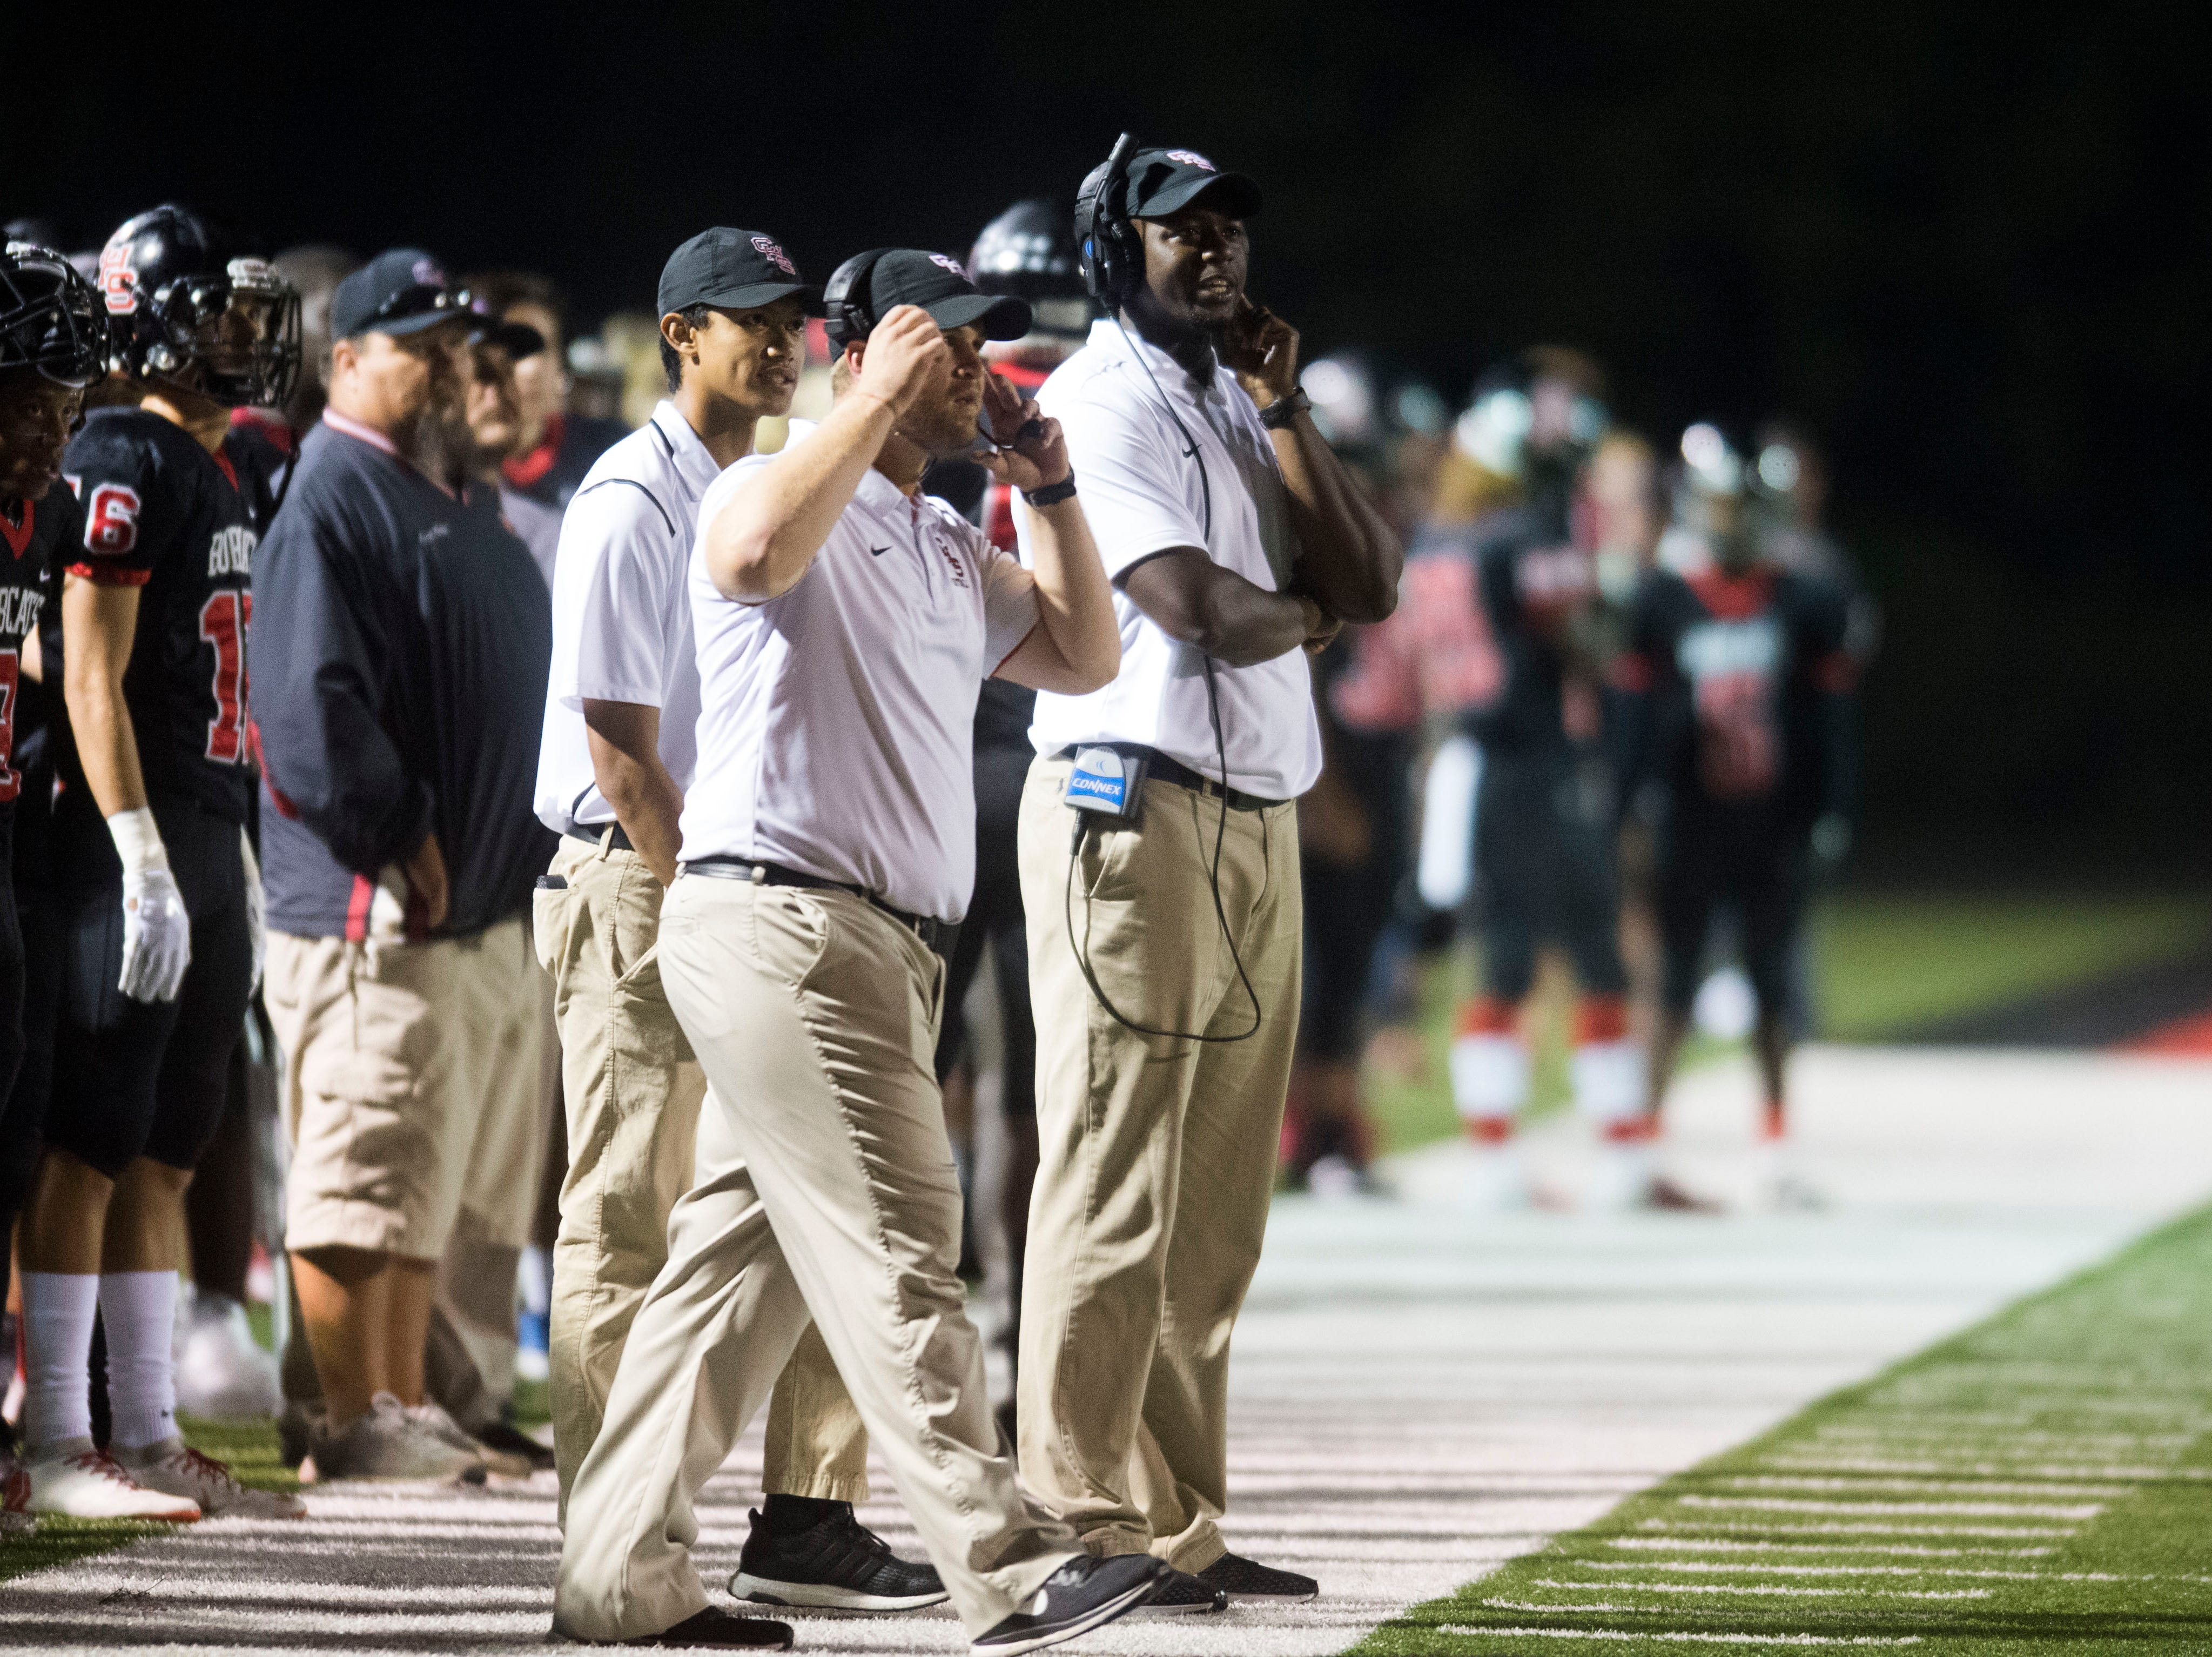 Central head coach Bryson Rosser, center, watches on the sidelines during a game against Halls at Central on Friday, Sept. 28, 2018. Central won 49-17.